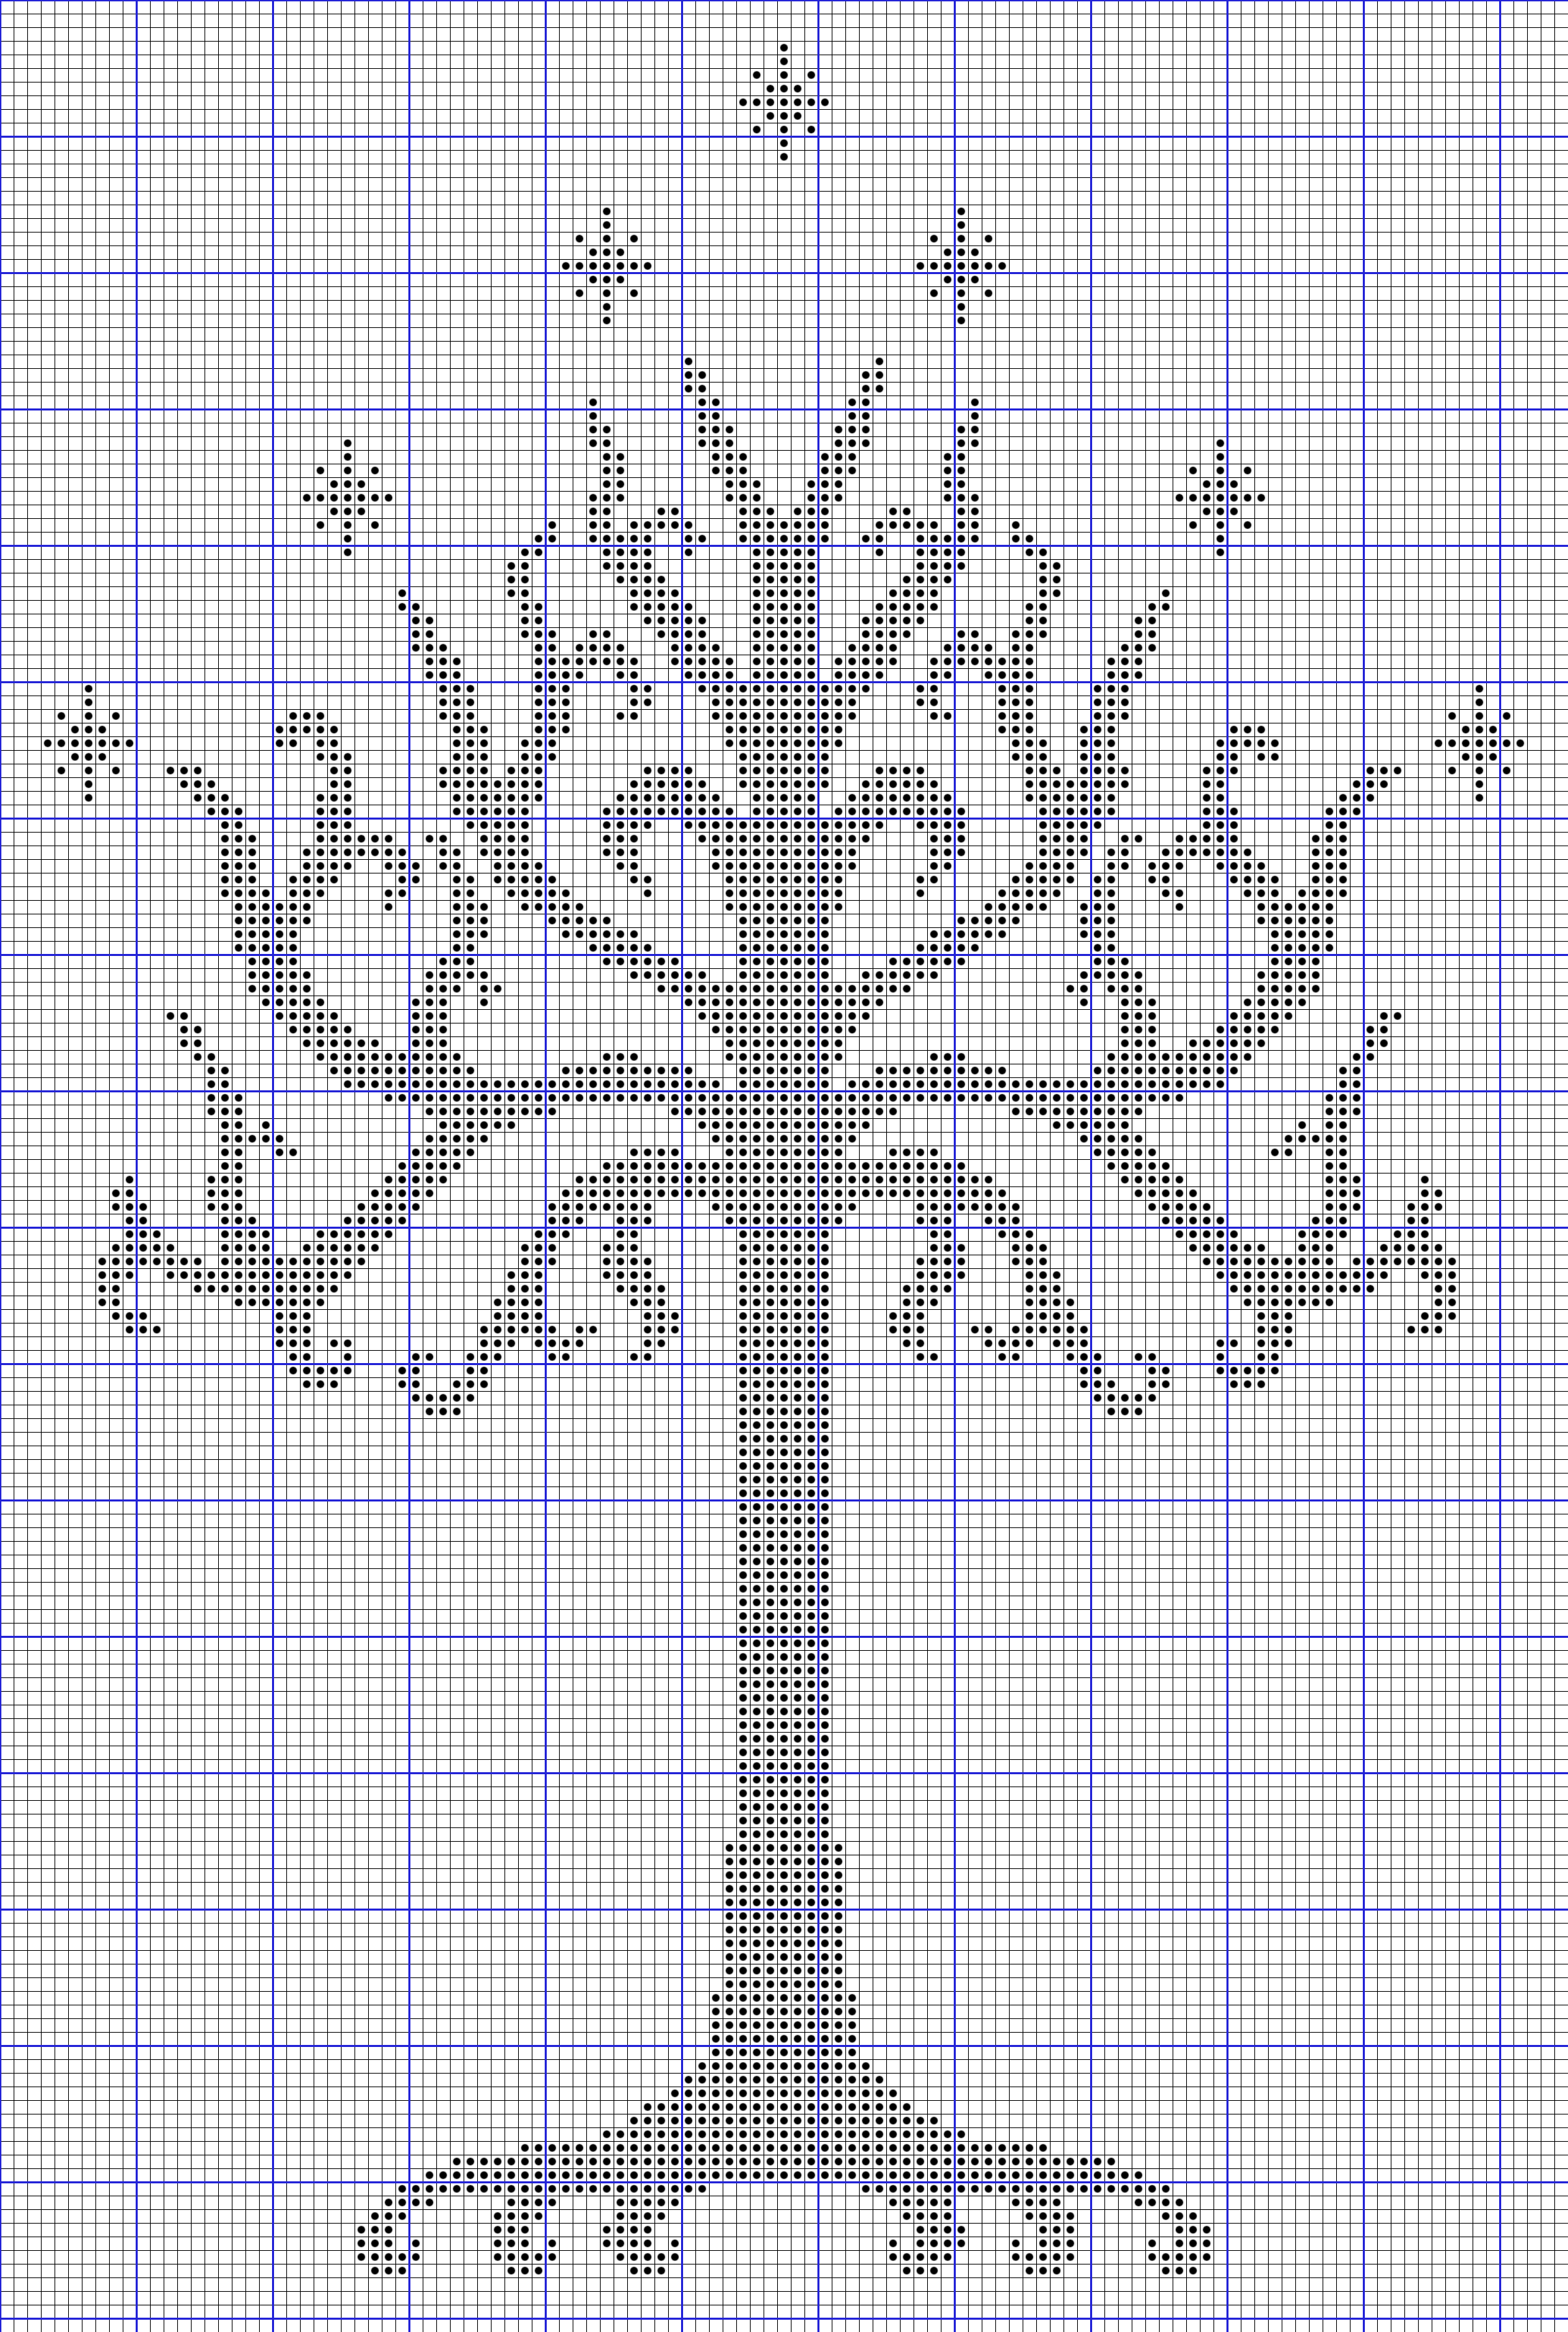 white tree of gondor free cross stitch pattern | Fun Freebies ...